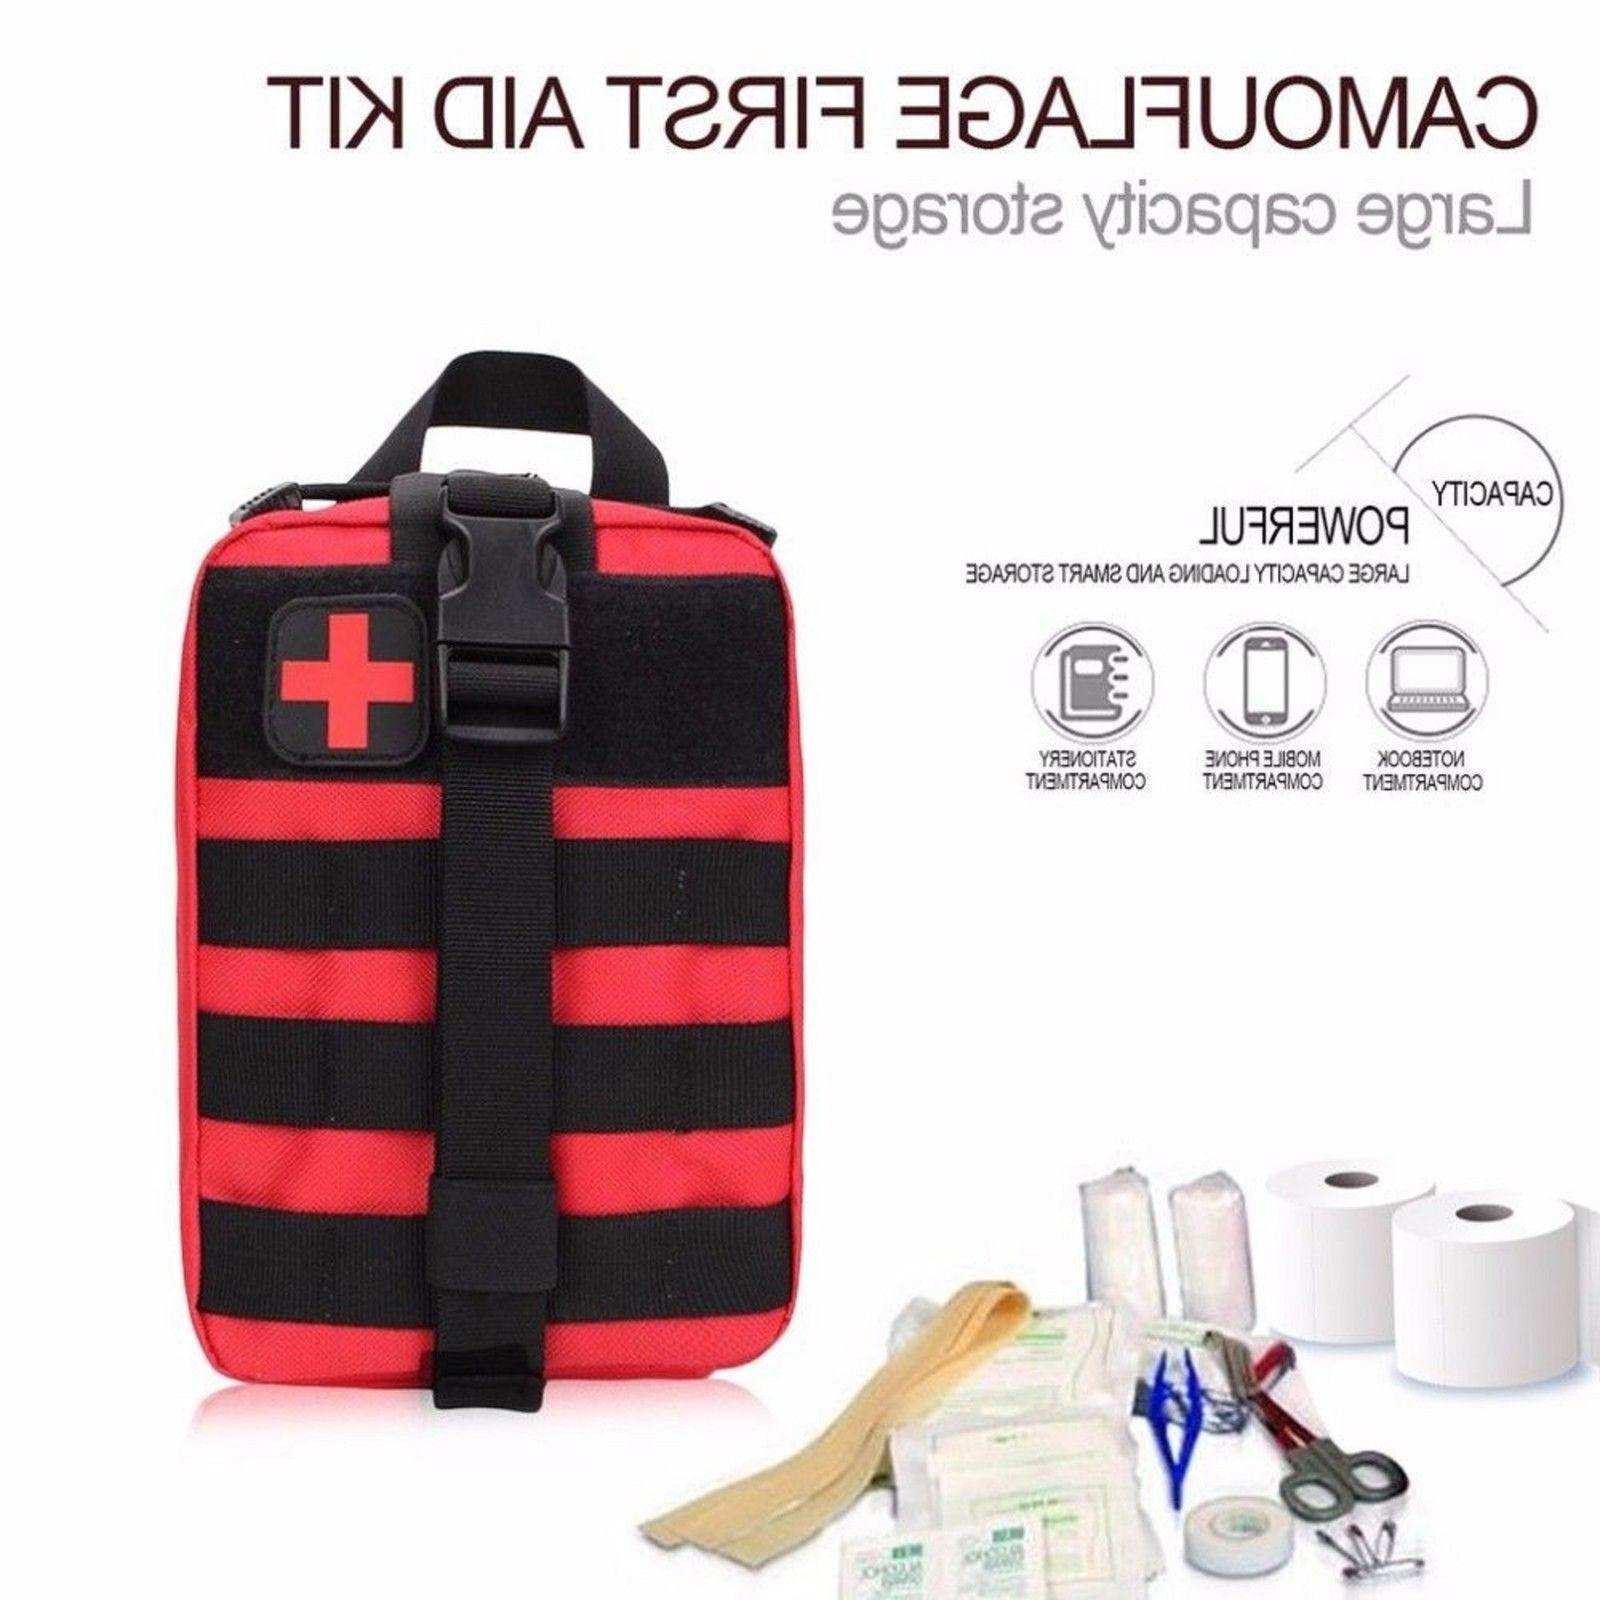 Medical First Bag Kit